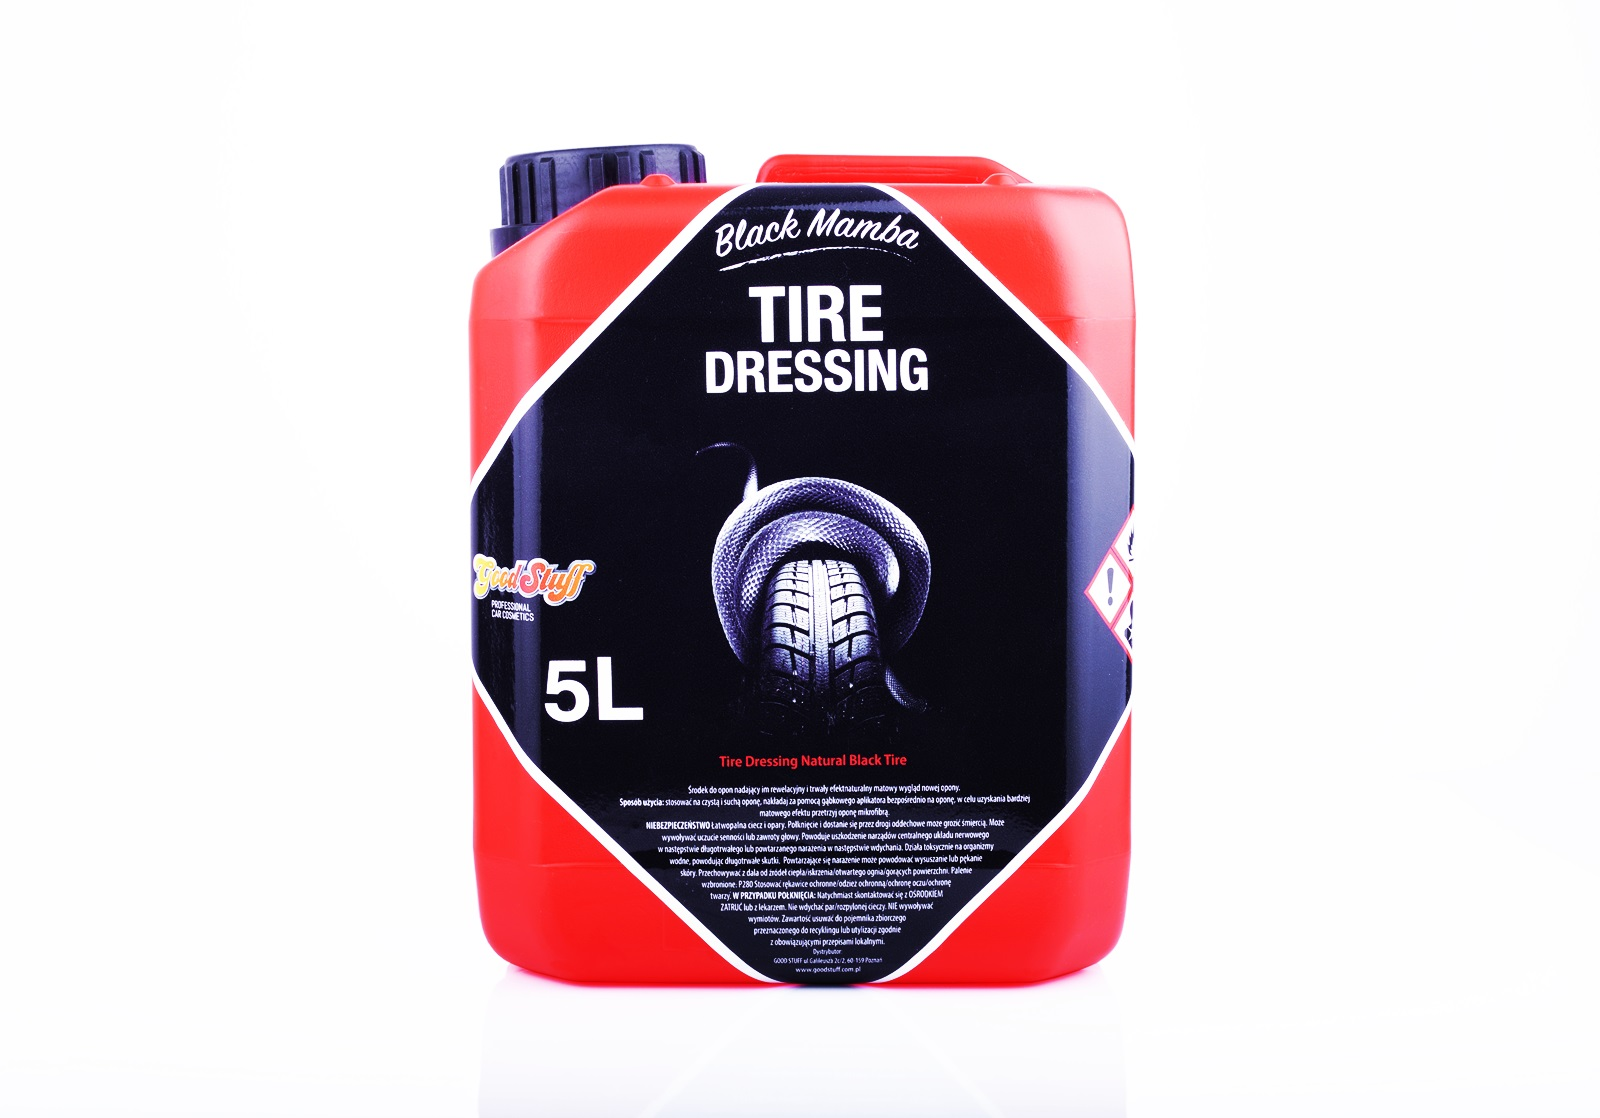 Good Stuff Tire Dressing Black Mamba 5L